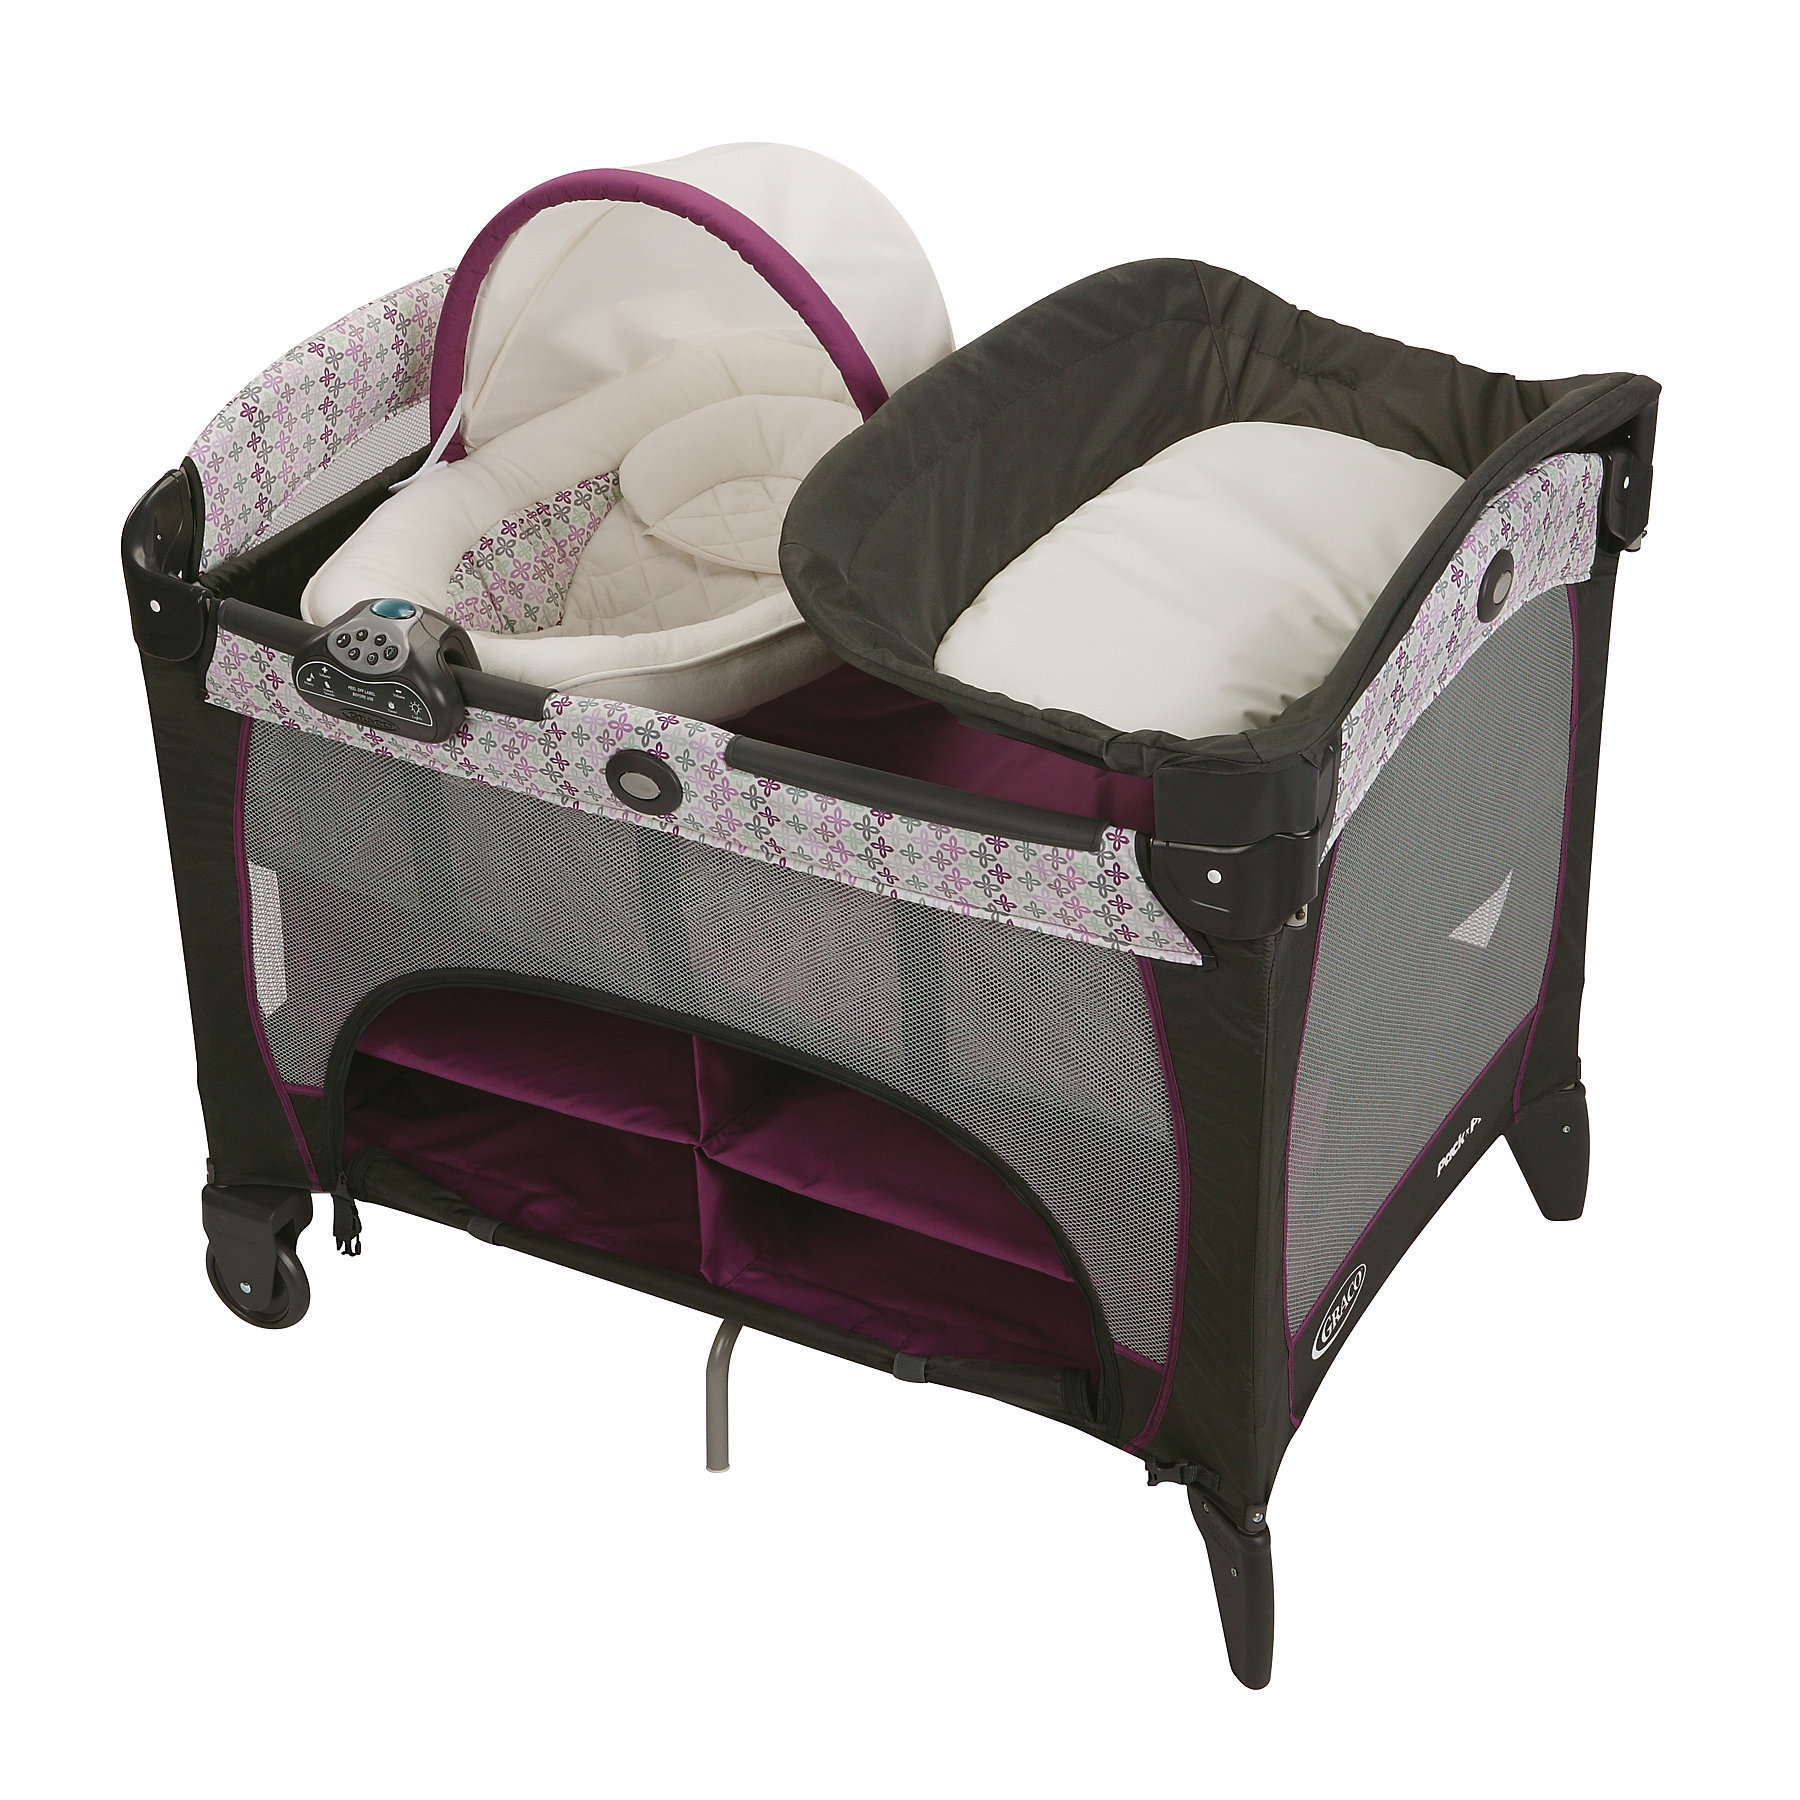 Graco Pack 'n Play with Newborn Napper Station DLX in Nys...